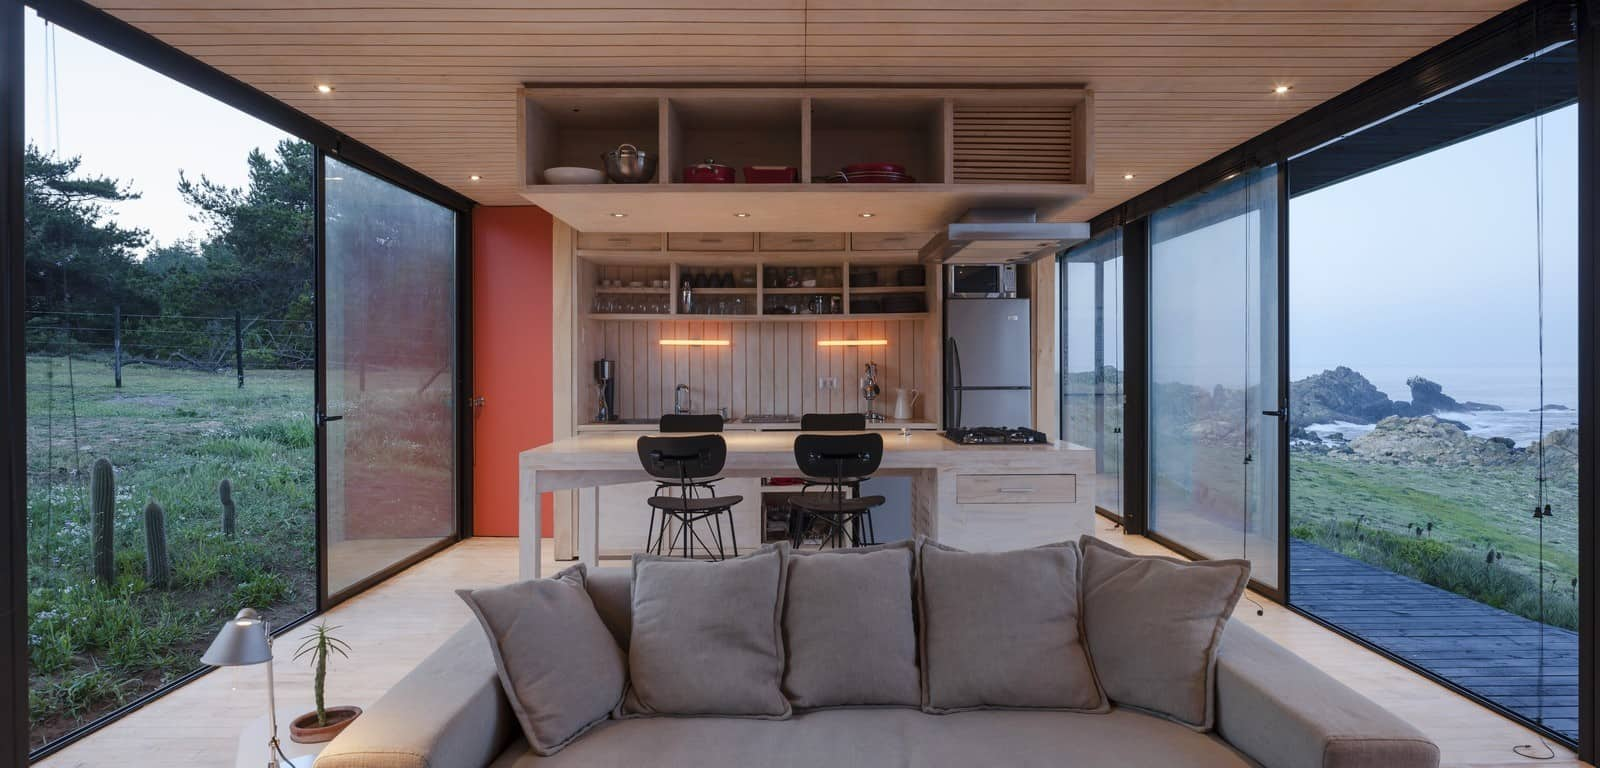 Remote Transportable Modular House in Chile by Felipe Assadi 9